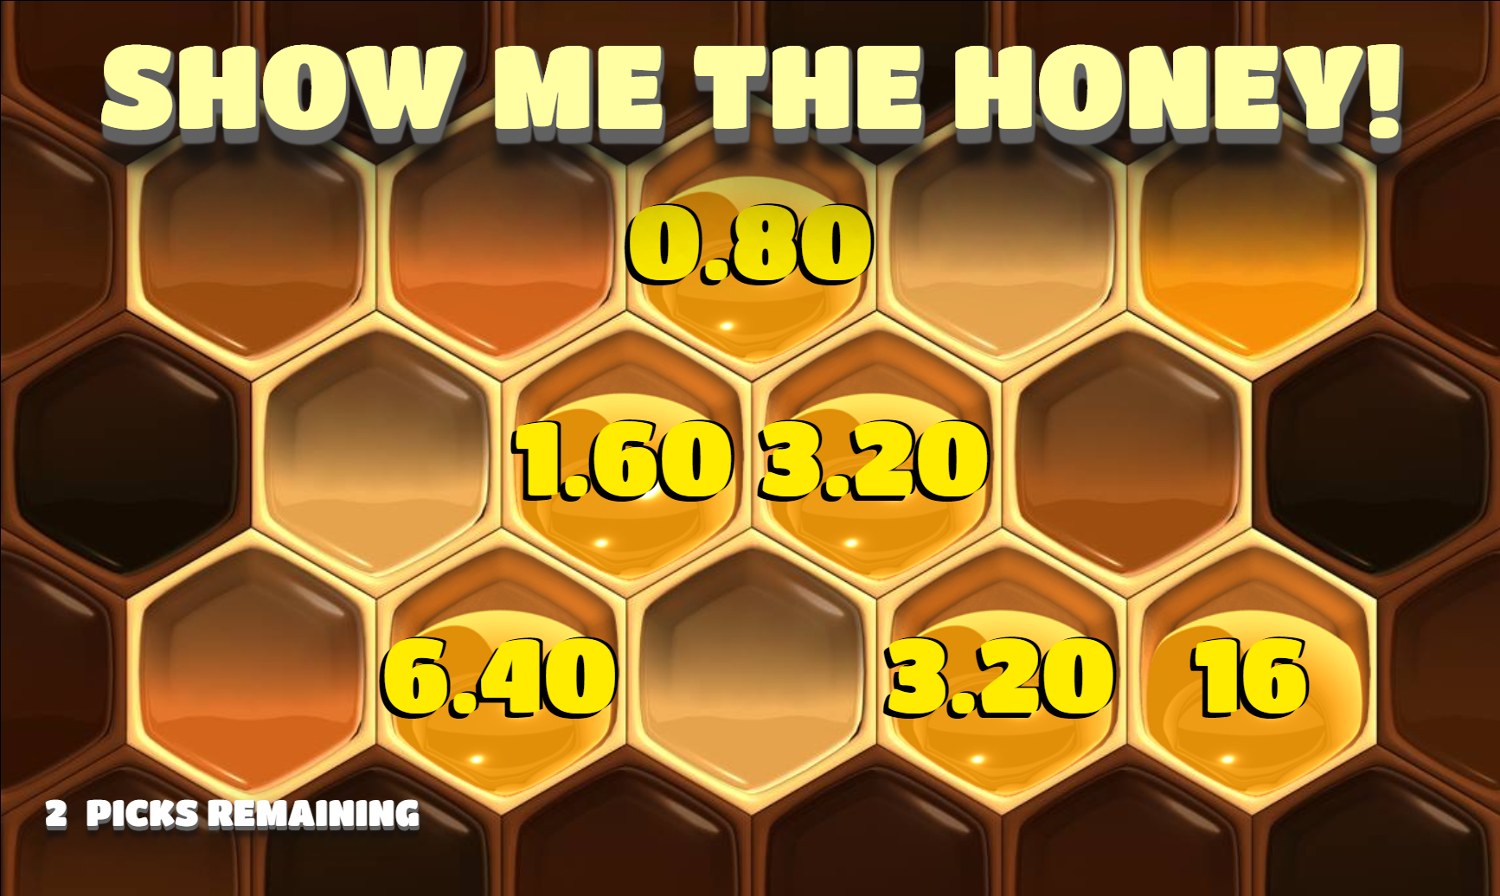 Gioco bonus di Show me the honey